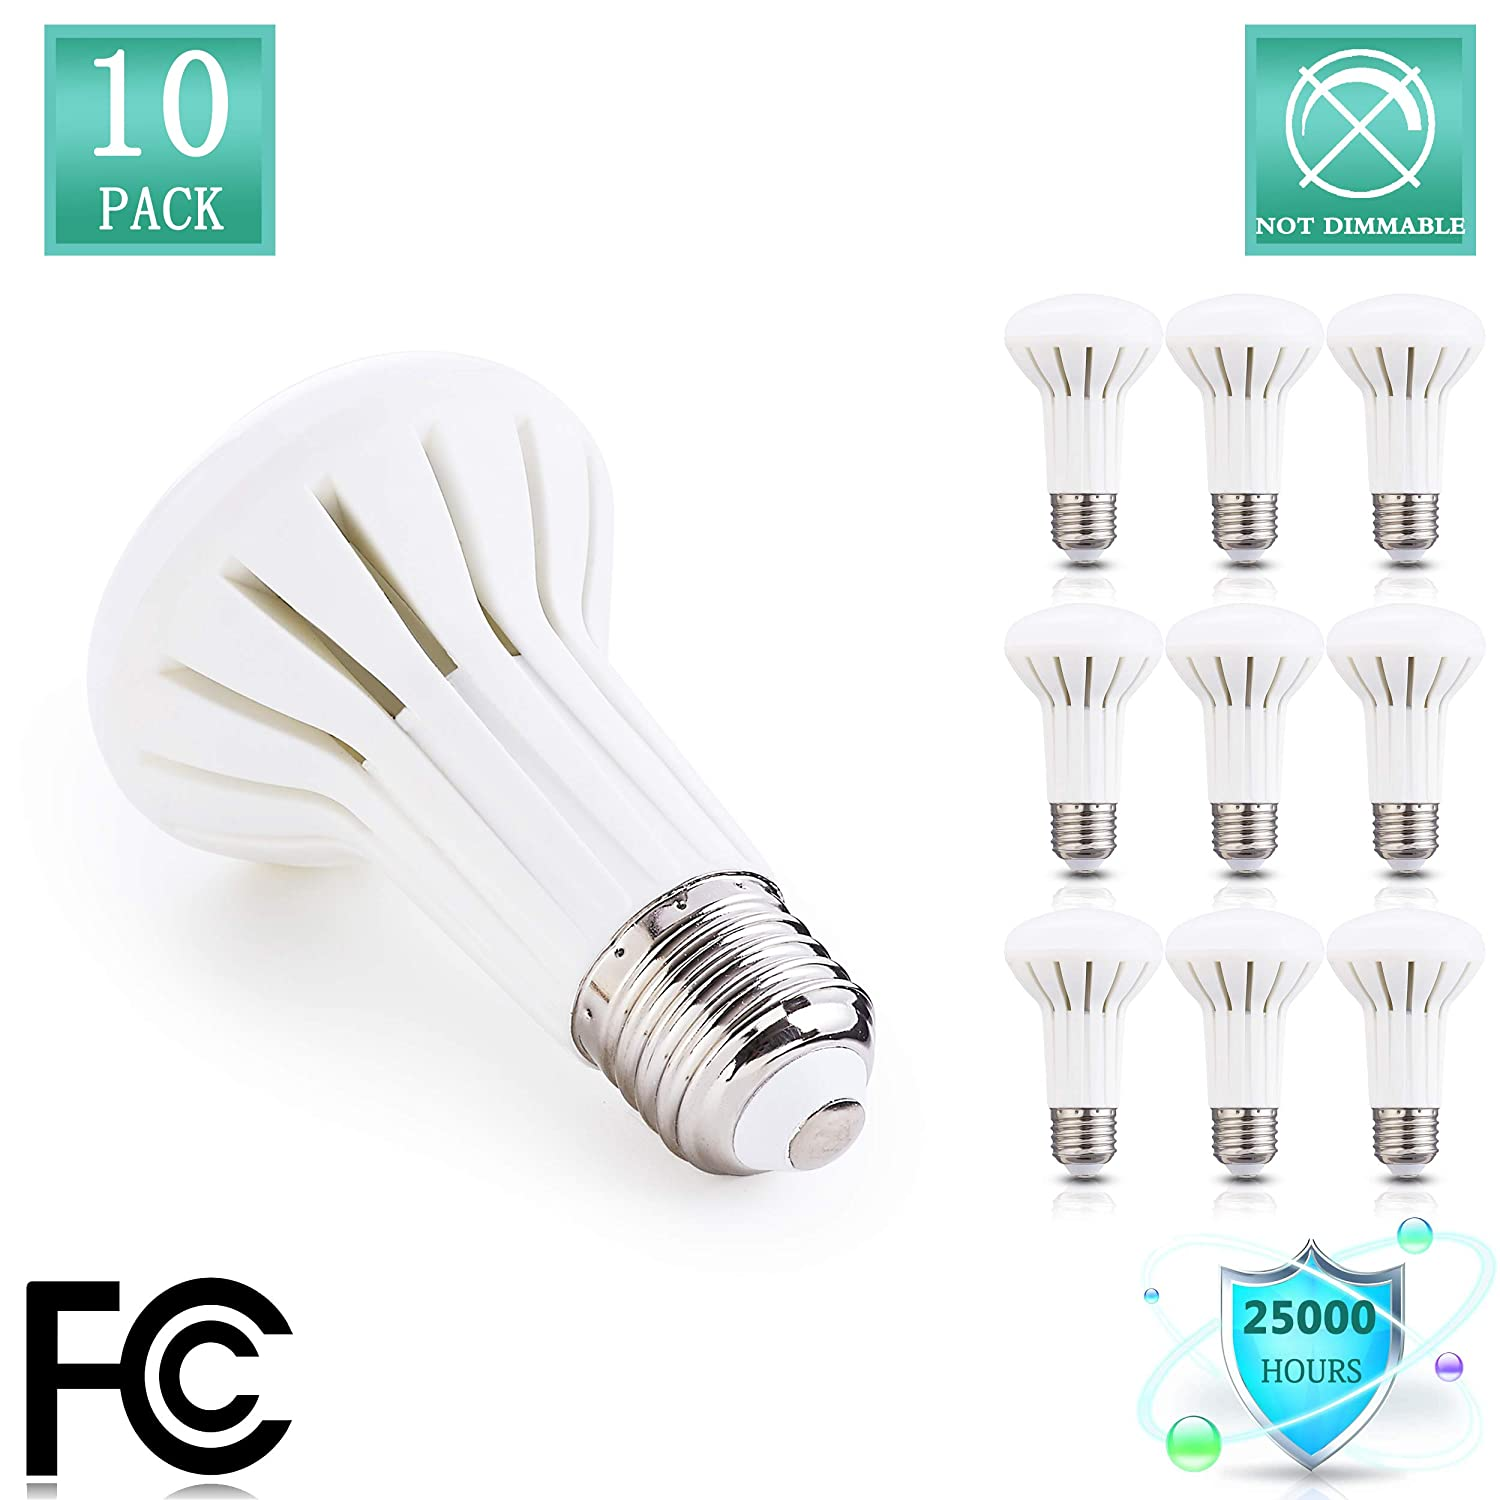 BR20 LED lighting Bulb, 500 lumens,Indoor outdoor Flood Light Bulb,5W (45W Incandescent Equivalent), Daylight White 5000K, Non Dimmable appliance light Bulb Damp Rated, E26 Medium Base(Pack of 10)